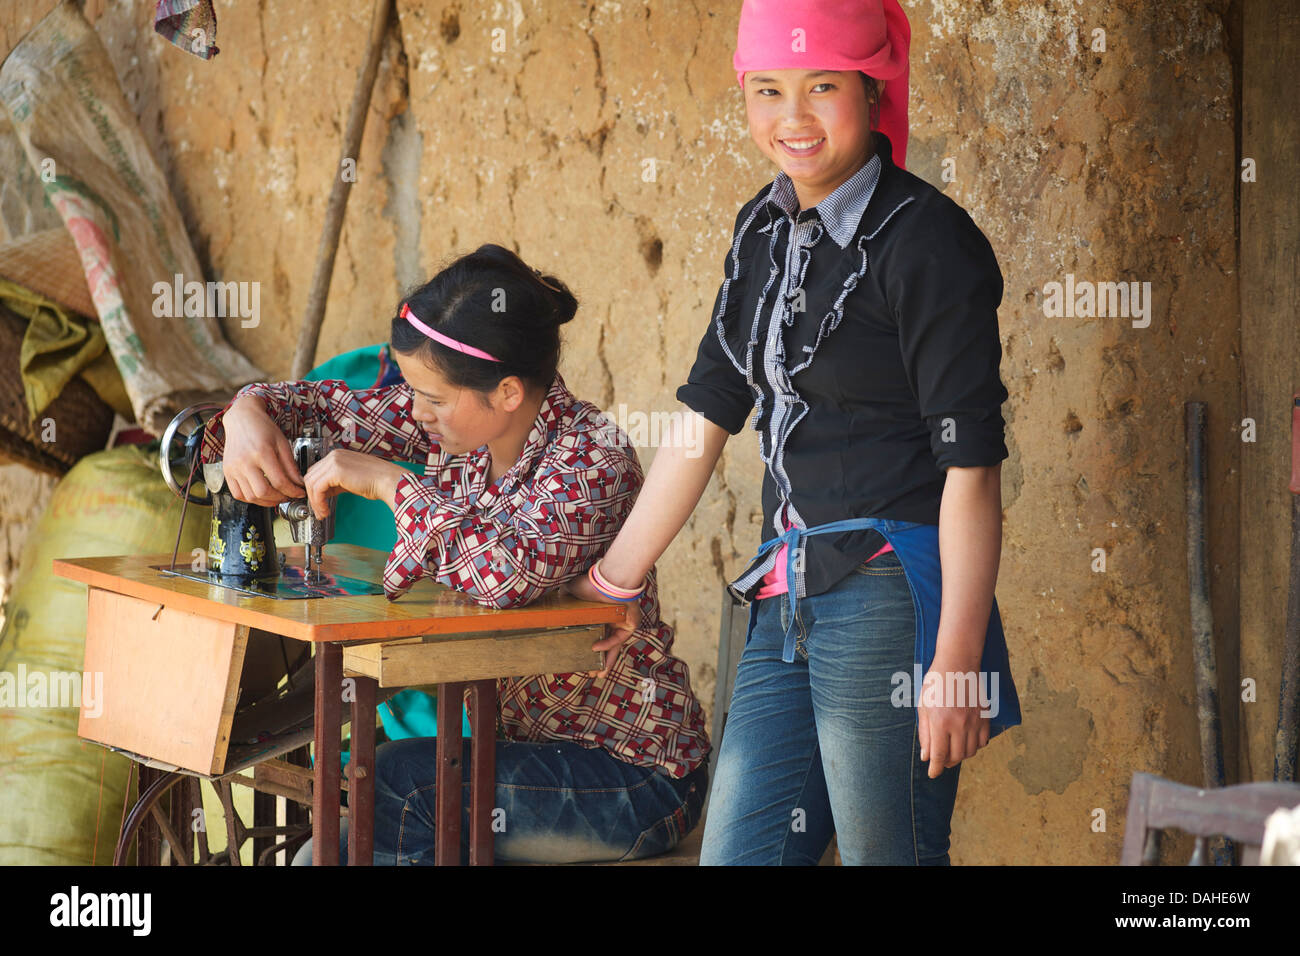 Hilltribe women, one using a sewing machine, Lung Phin between Bac Ha and Can Cau, N Vietnam - Stock Image